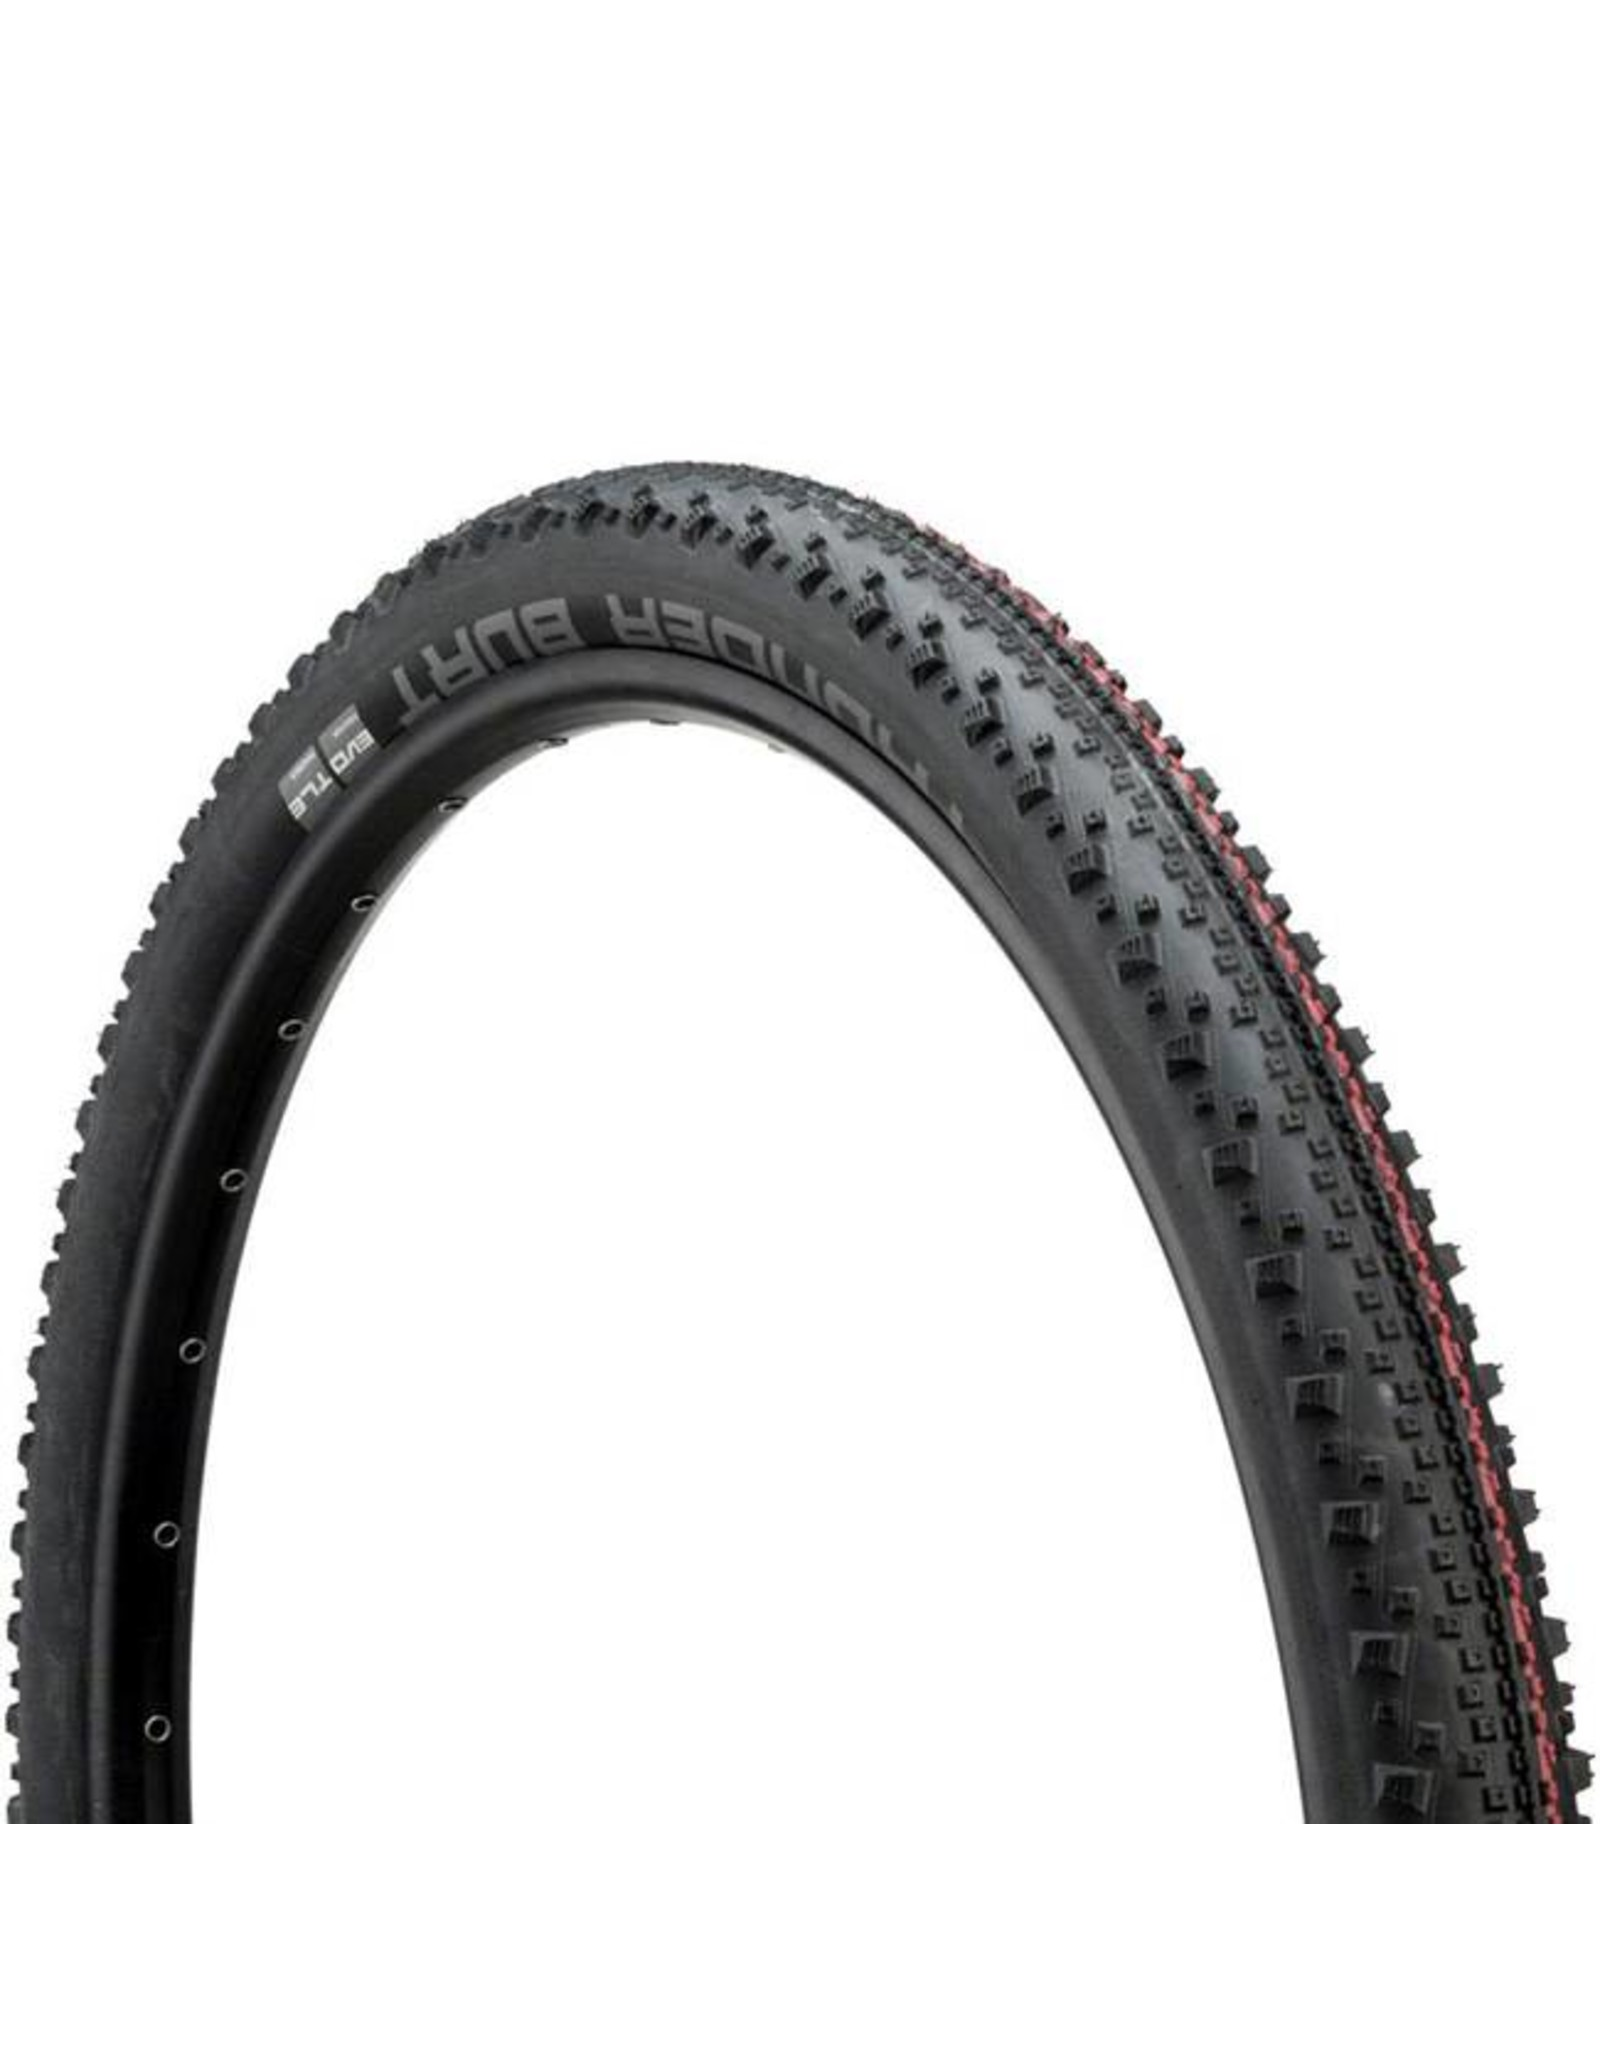 "Schwalbe Schwalbe Thunder Burt Tire: 27.5 x 2.10"", Folding Bead, Evolution Line, Addix Speed Compound, SnakeSkin, Tubeless Easy, Black"